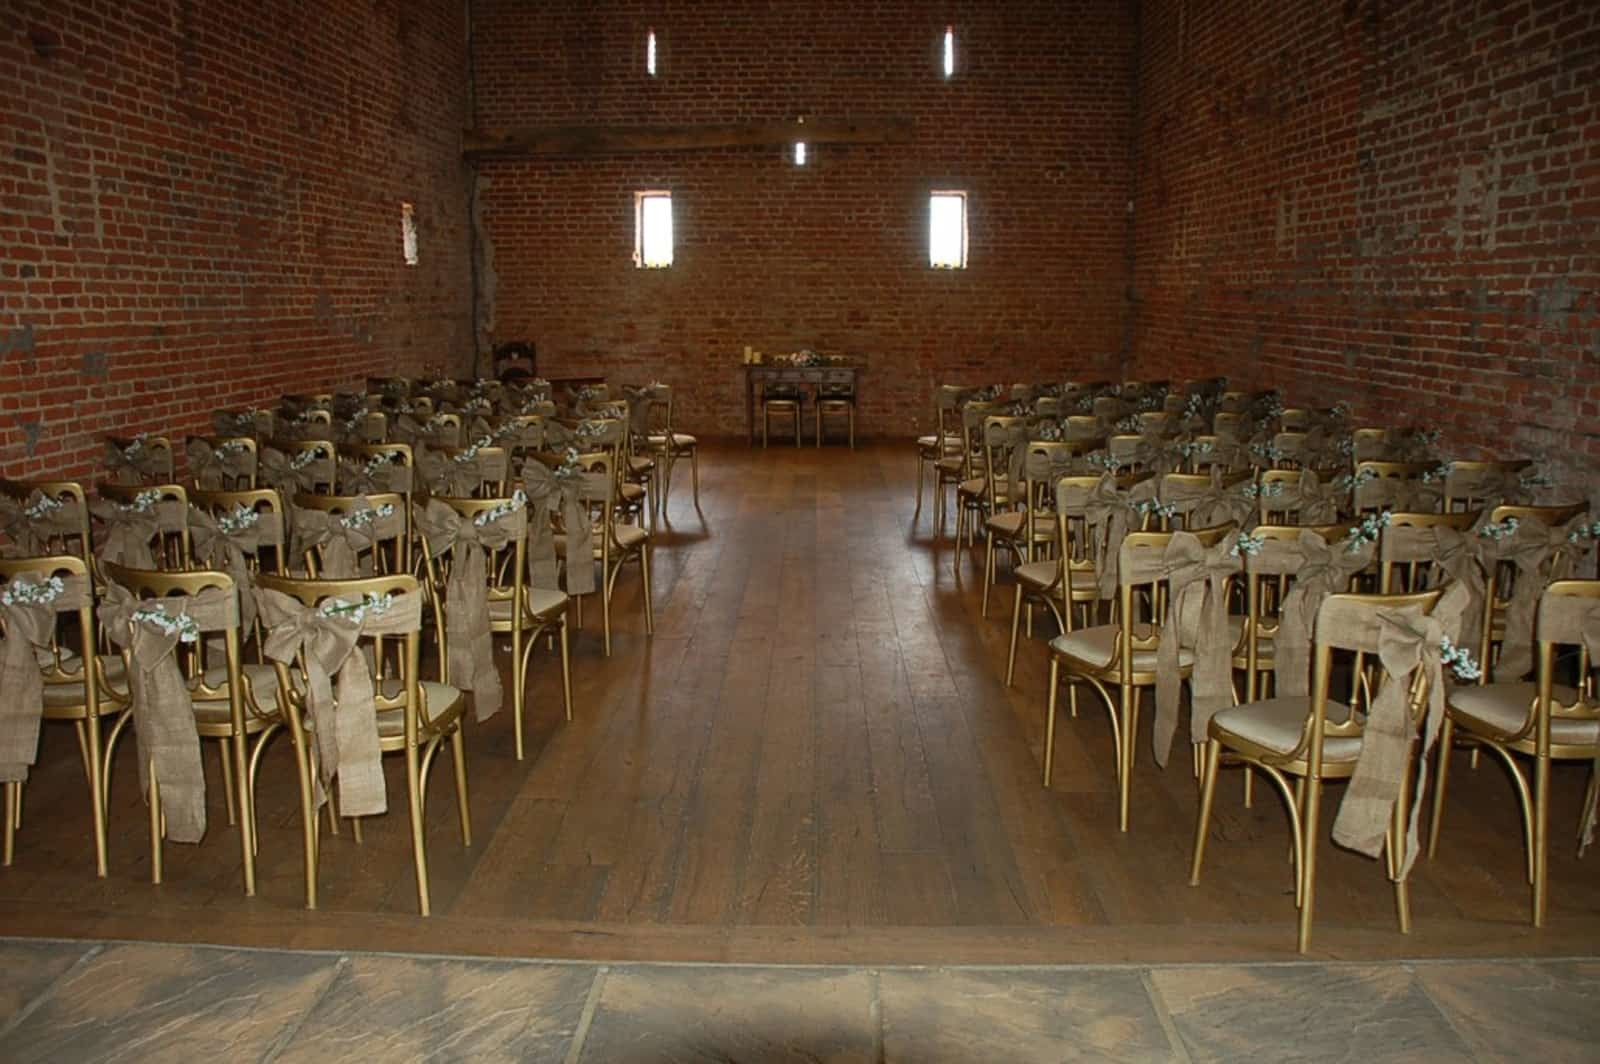 Bows and flower chairs at wedding ceremony